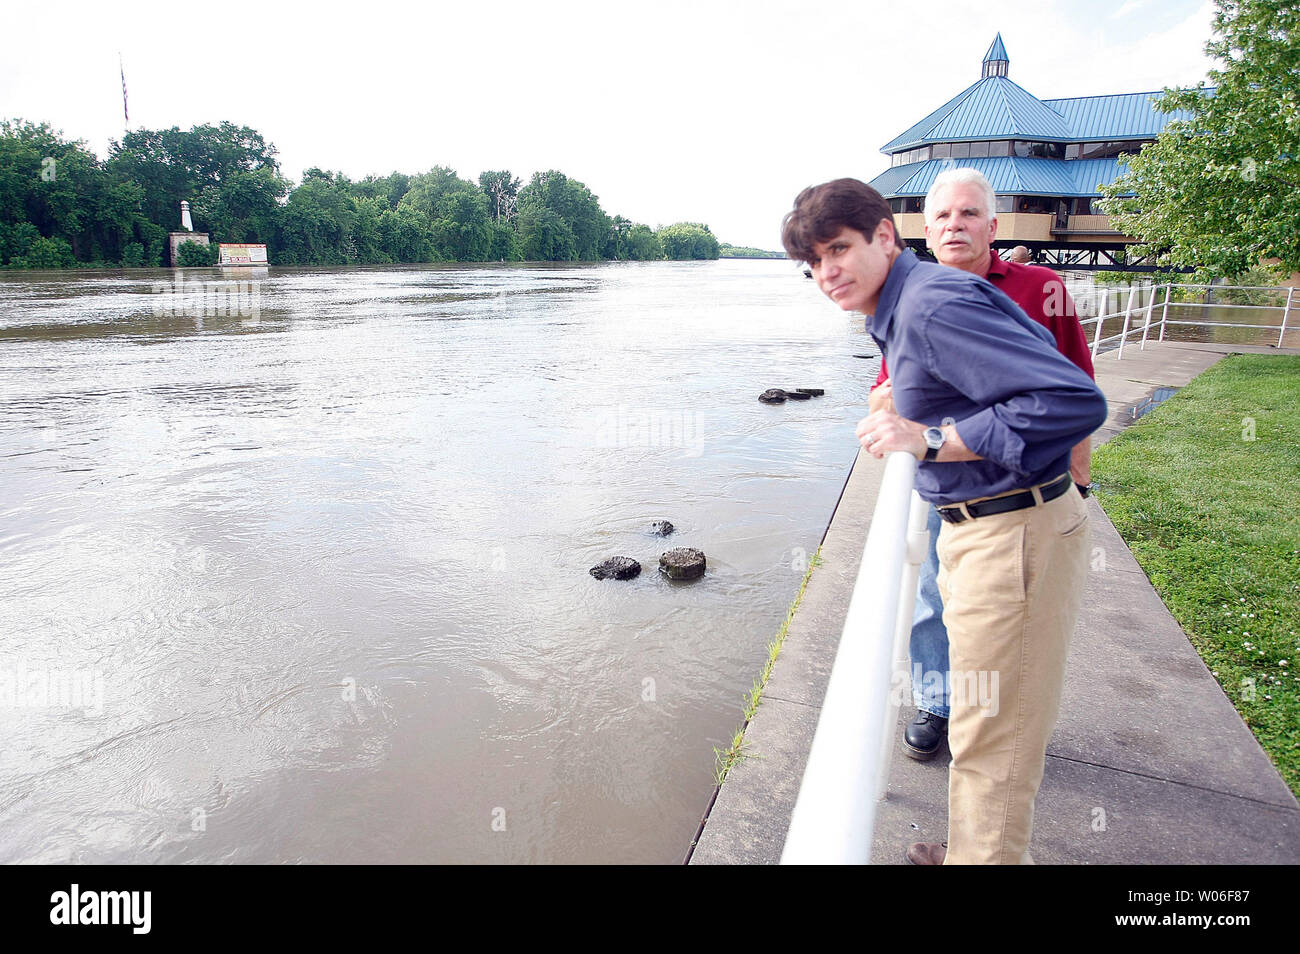 Flood Of 1993 Stock Photos & Flood Of 1993 Stock Images - Alamy